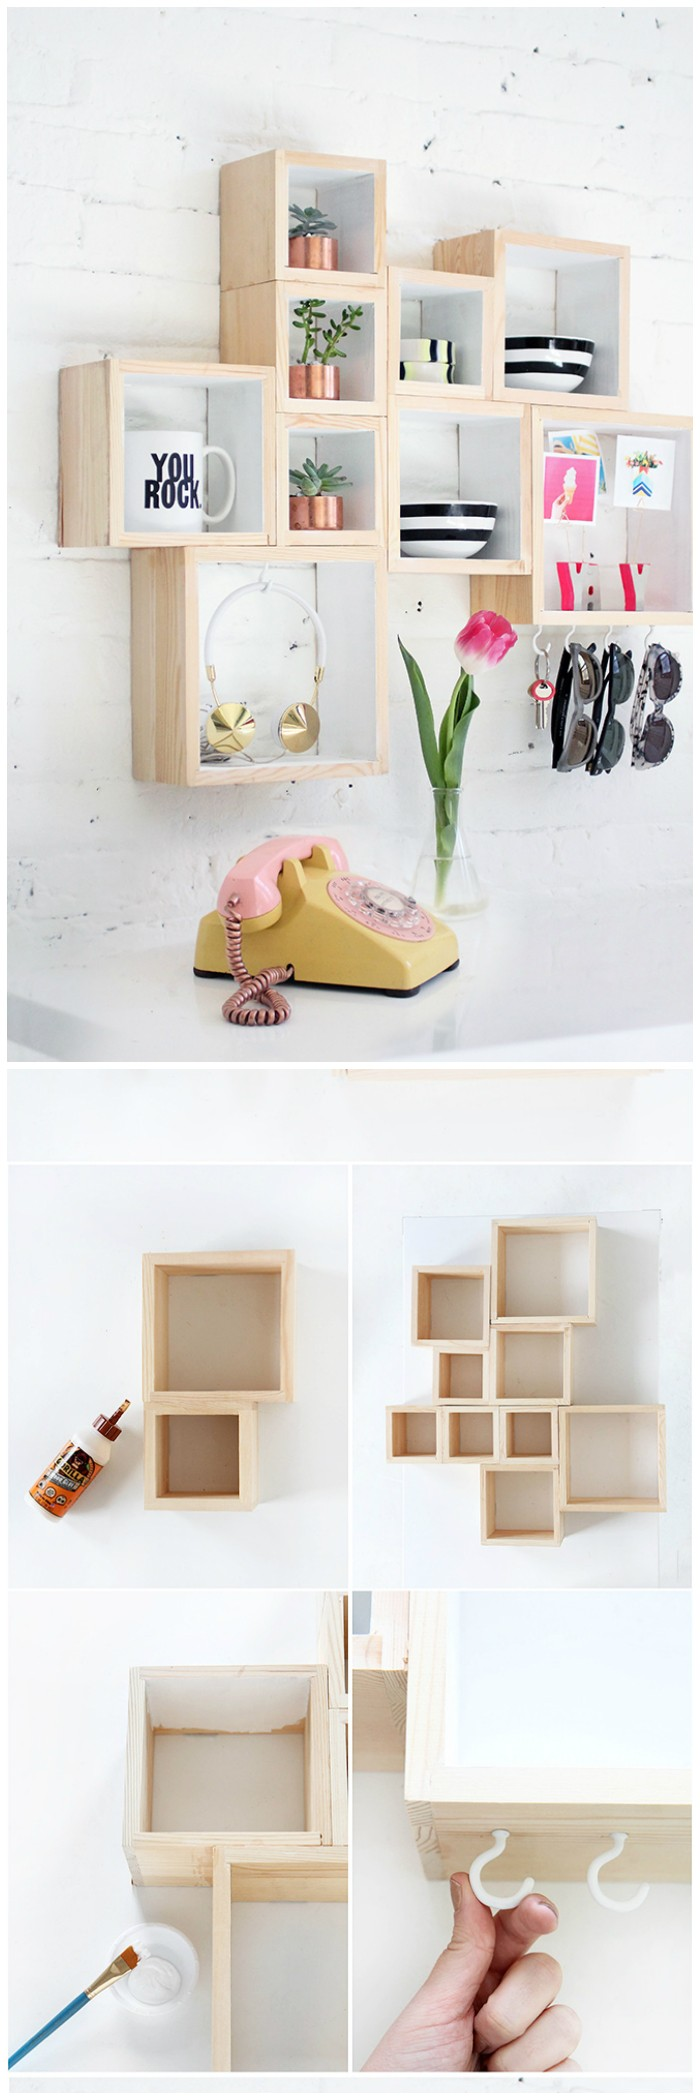 Geometrical Wall Shelves DIY Home Decor Projects To Make Your Home Precious